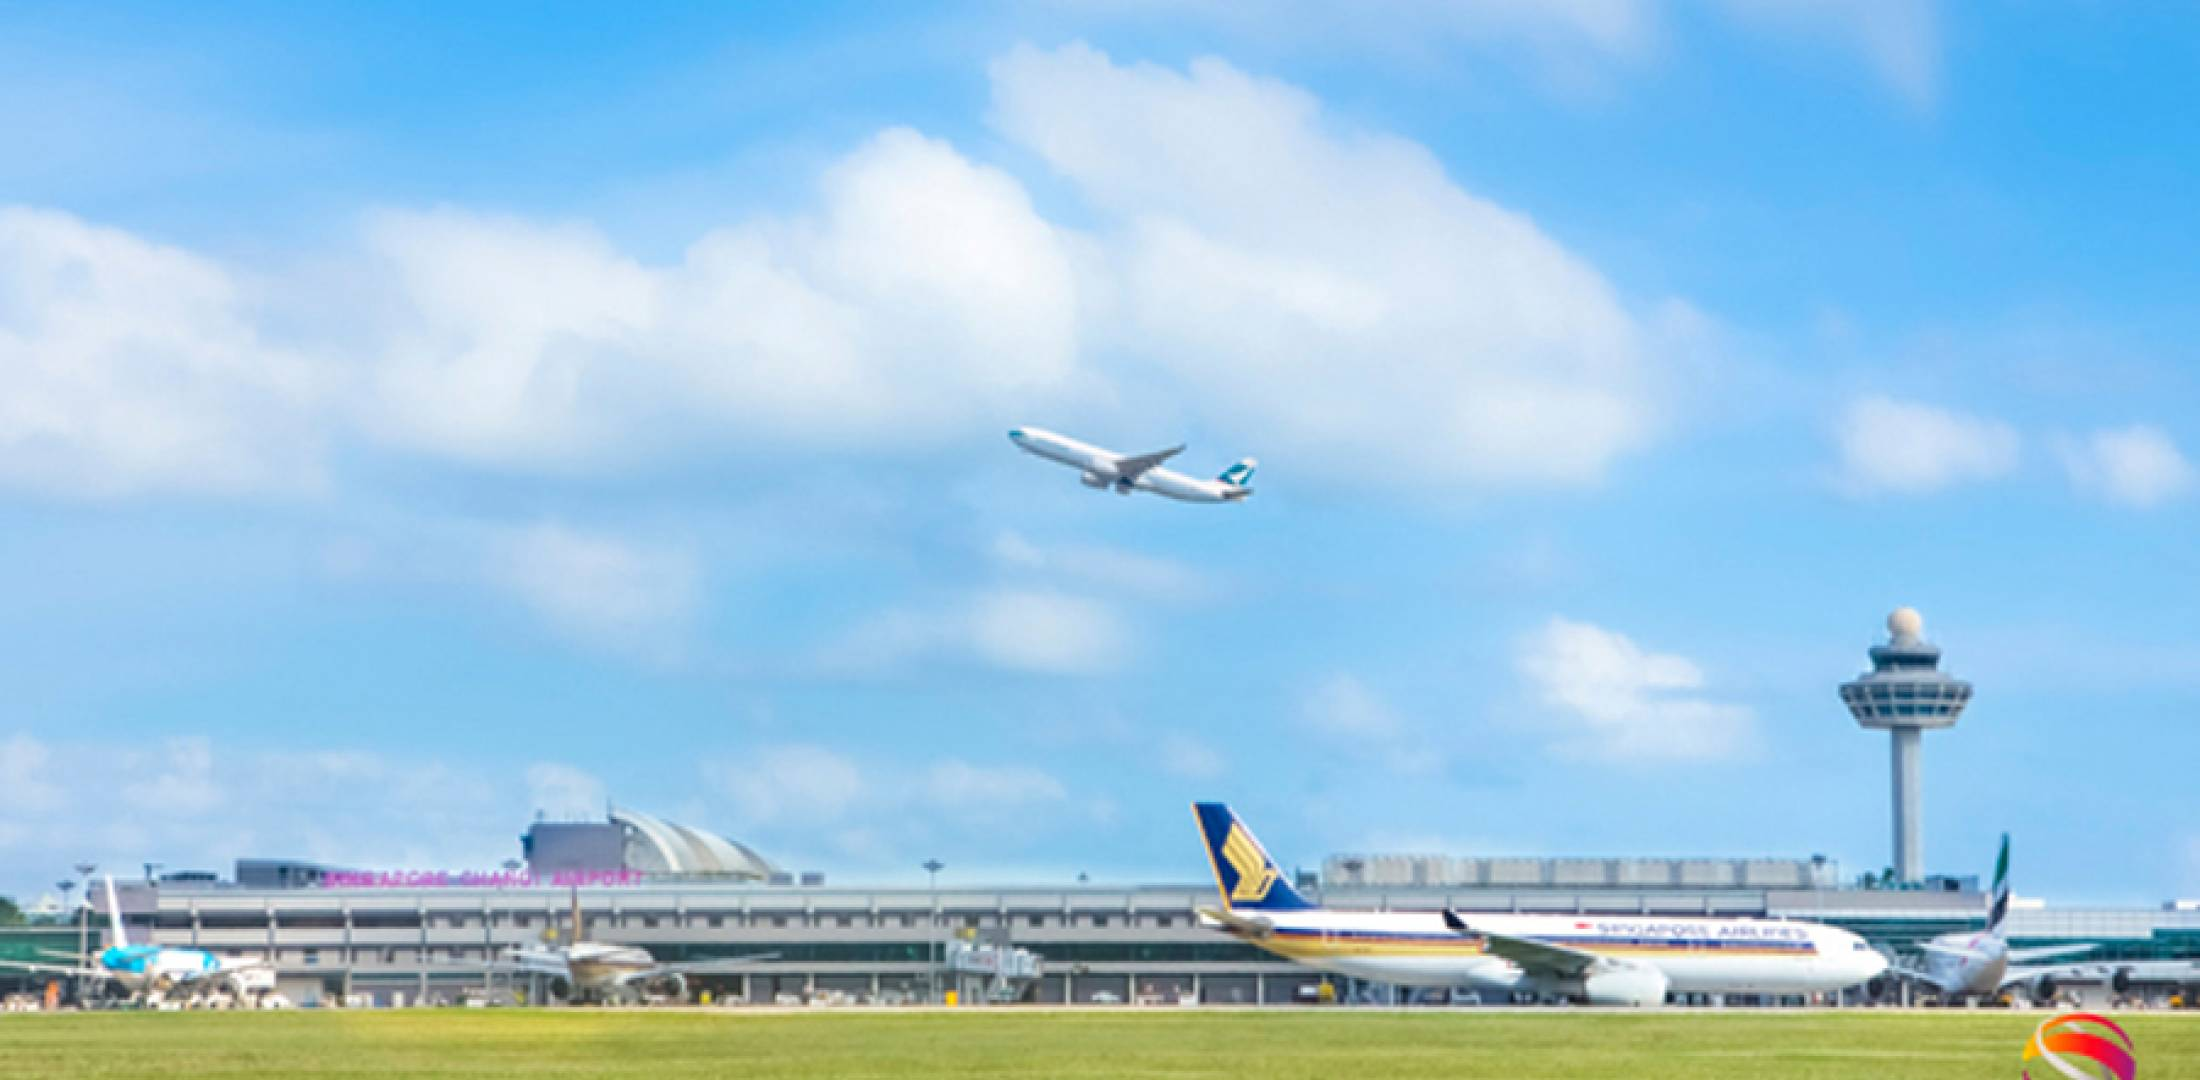 Handling on average more than a million travelers a week and almost 1,000 aircraft movements a day, Singapore's Changi Airport is seeing record numbers of flights and passengers.